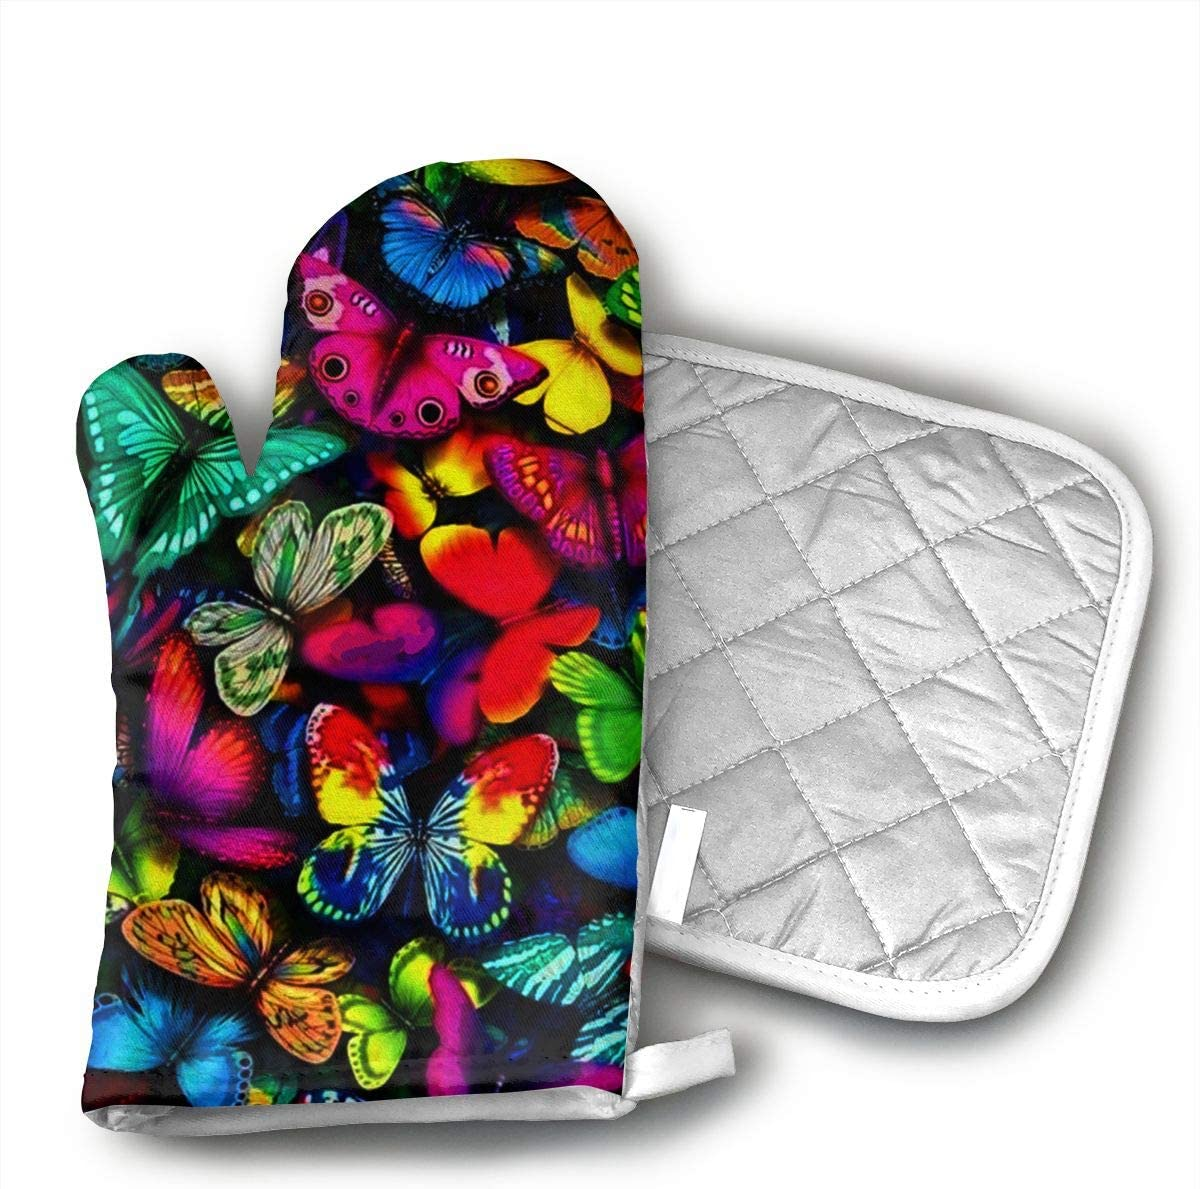 TRENDCAT Colorful Butterfly Oven Mitts and Potholders (2-Piece Sets) - Extra Long Professional Heat Resistant Pot Holder & Baking Gloves - Food Safe